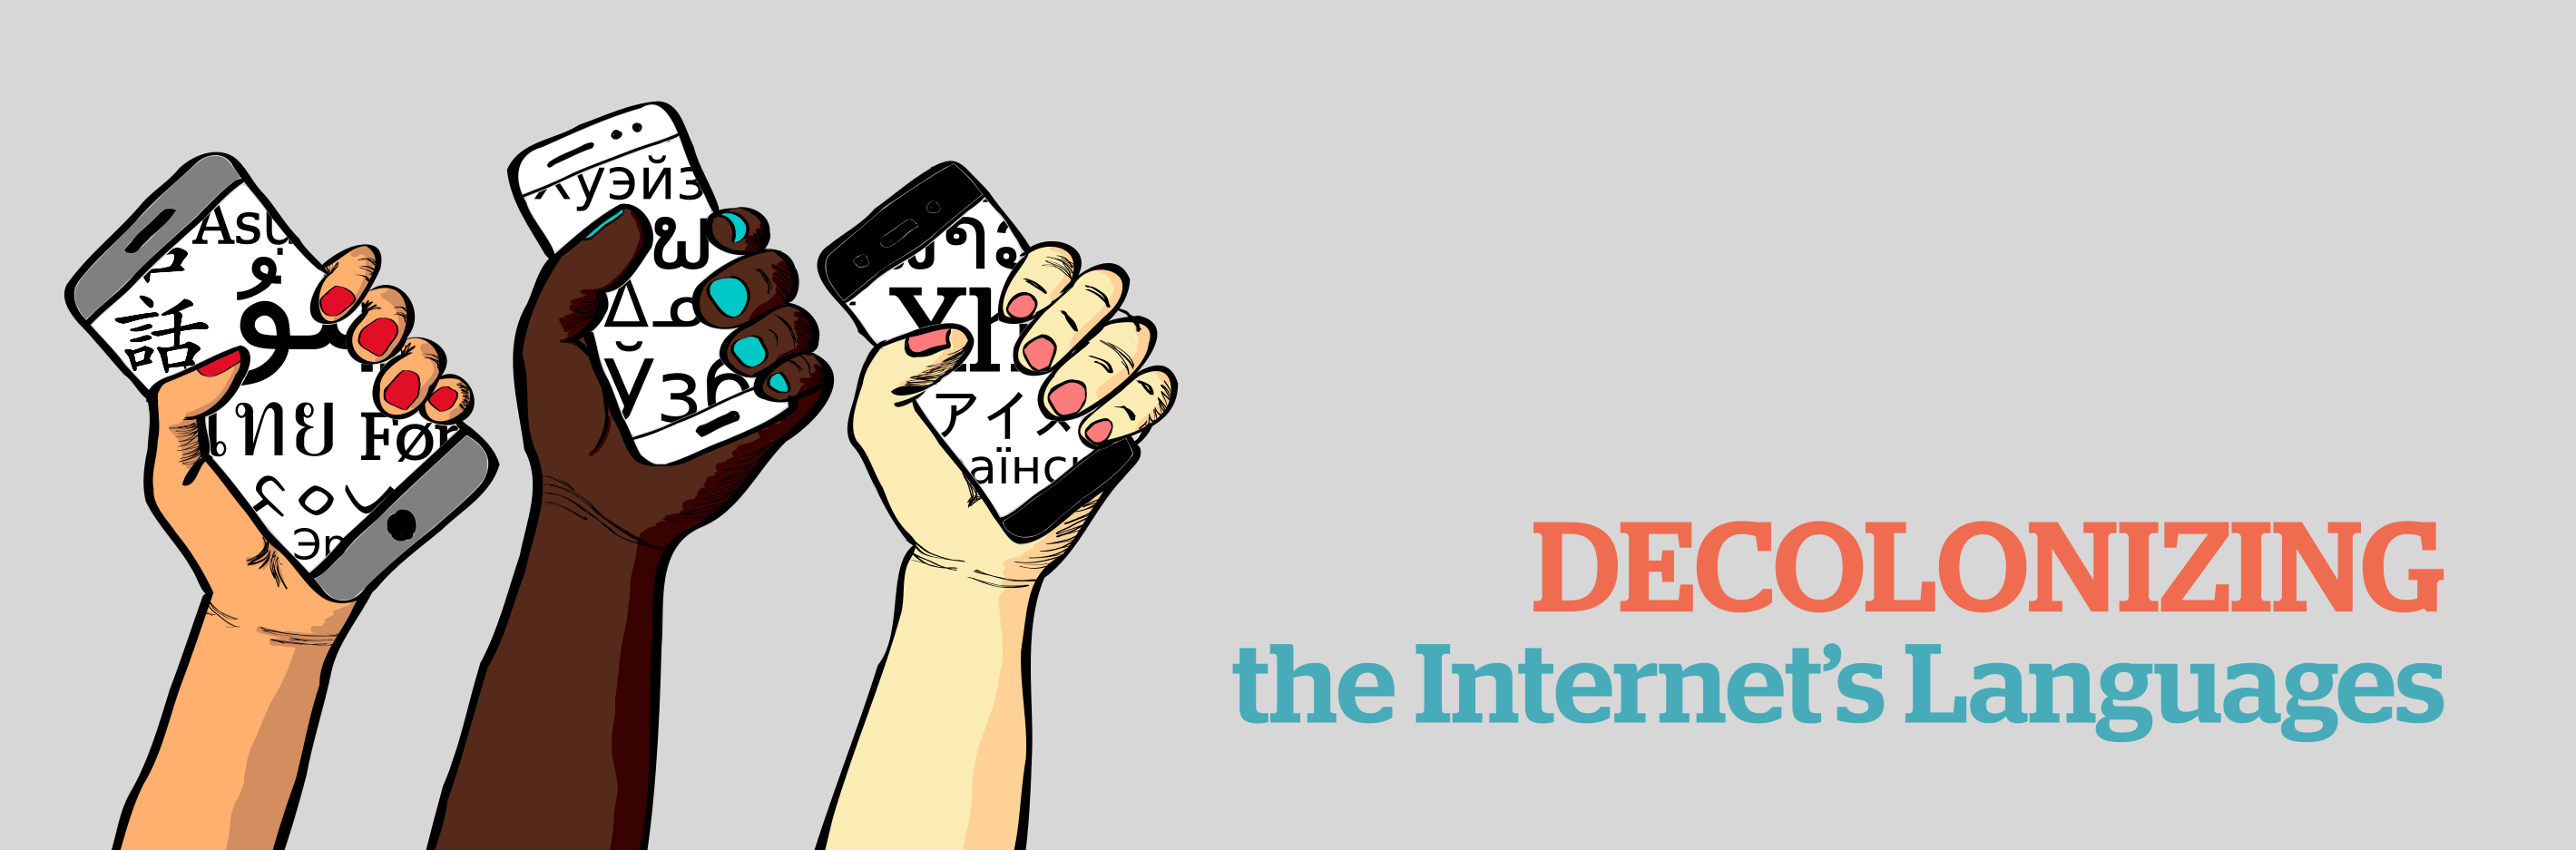 Call for Contributions and Reflections: Your experiences in Decolonizing the Internet's Languages!